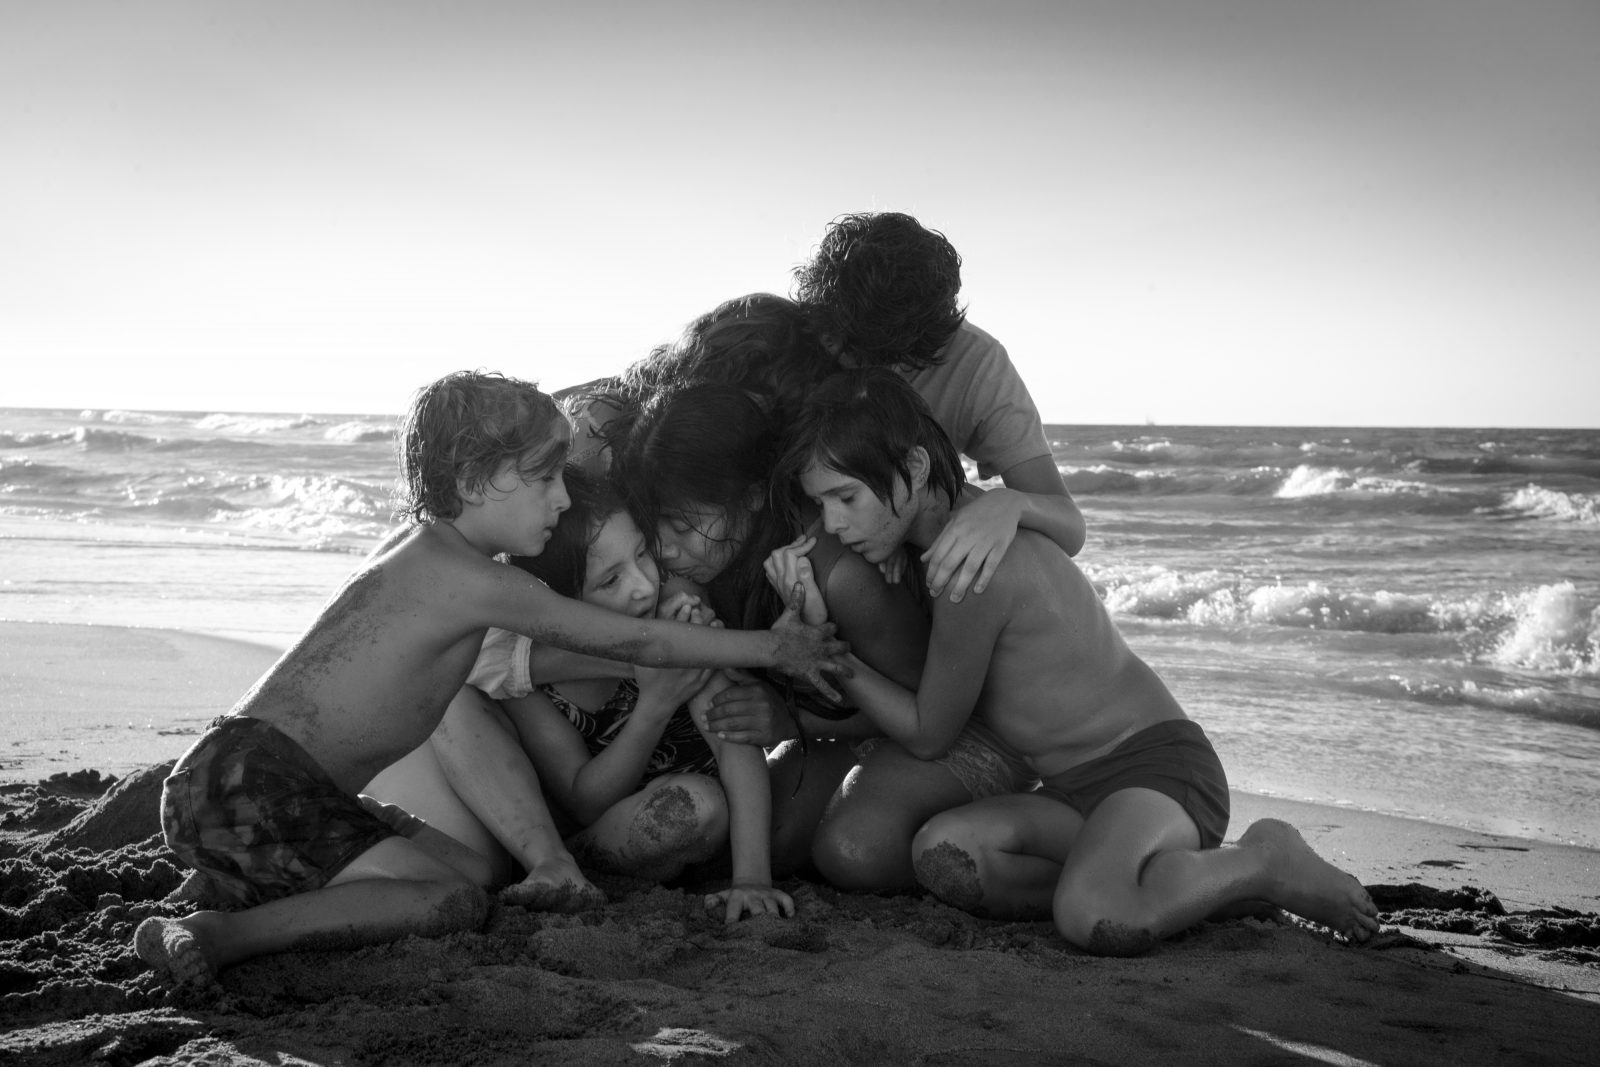 TRAILER: Alfonso Cuarón's Mexico City-Set Drama 'Roma' Is Coming Soon to a Theater Near You